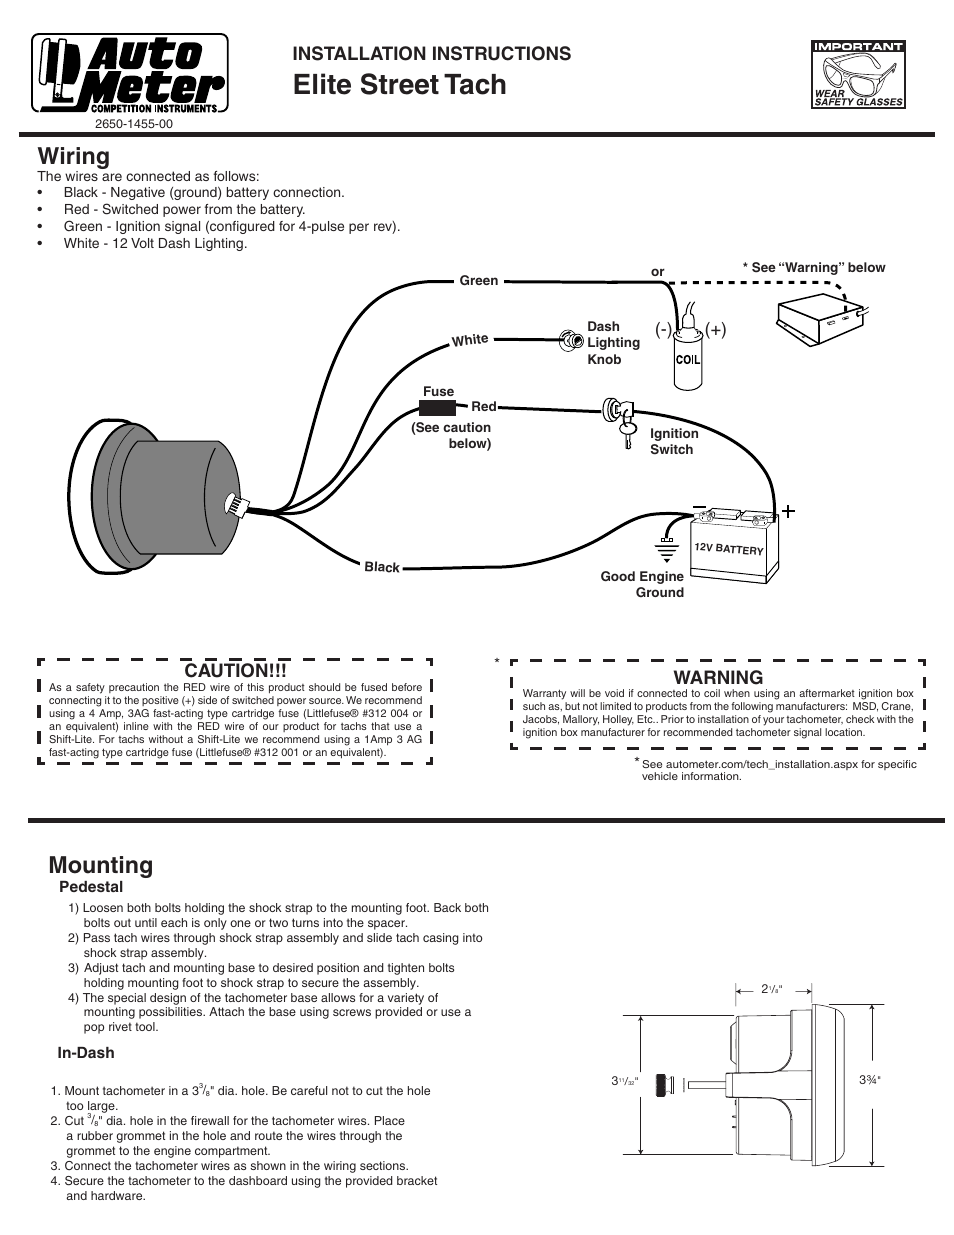 A494 Electronic Sdometer Wiring Diagram | Wiring Resources on jeep wrangler, 2007 jeep liberty wiring diagram, suzuki xl7 wiring diagram, 95 jeep wiring diagram, chrysler crossfire wiring diagram, 91 silverado wiring diagram, jeep grand cherokee fuse box diagram, chevrolet impala wiring diagram, acura tl wiring diagram, cadillac xlr wiring diagram, volkswagen cabriolet wiring diagram, ford bronco wiring diagram, jeep zj wiring diagram, 1991 jeep cherokee fuse box diagram, jeep cj7 wiring-diagram, jeep starter wiring, ford thunderbird wiring diagram, jeep to chevy wiring harness, jeep jk wiring harness, volkswagen golf wiring diagram,